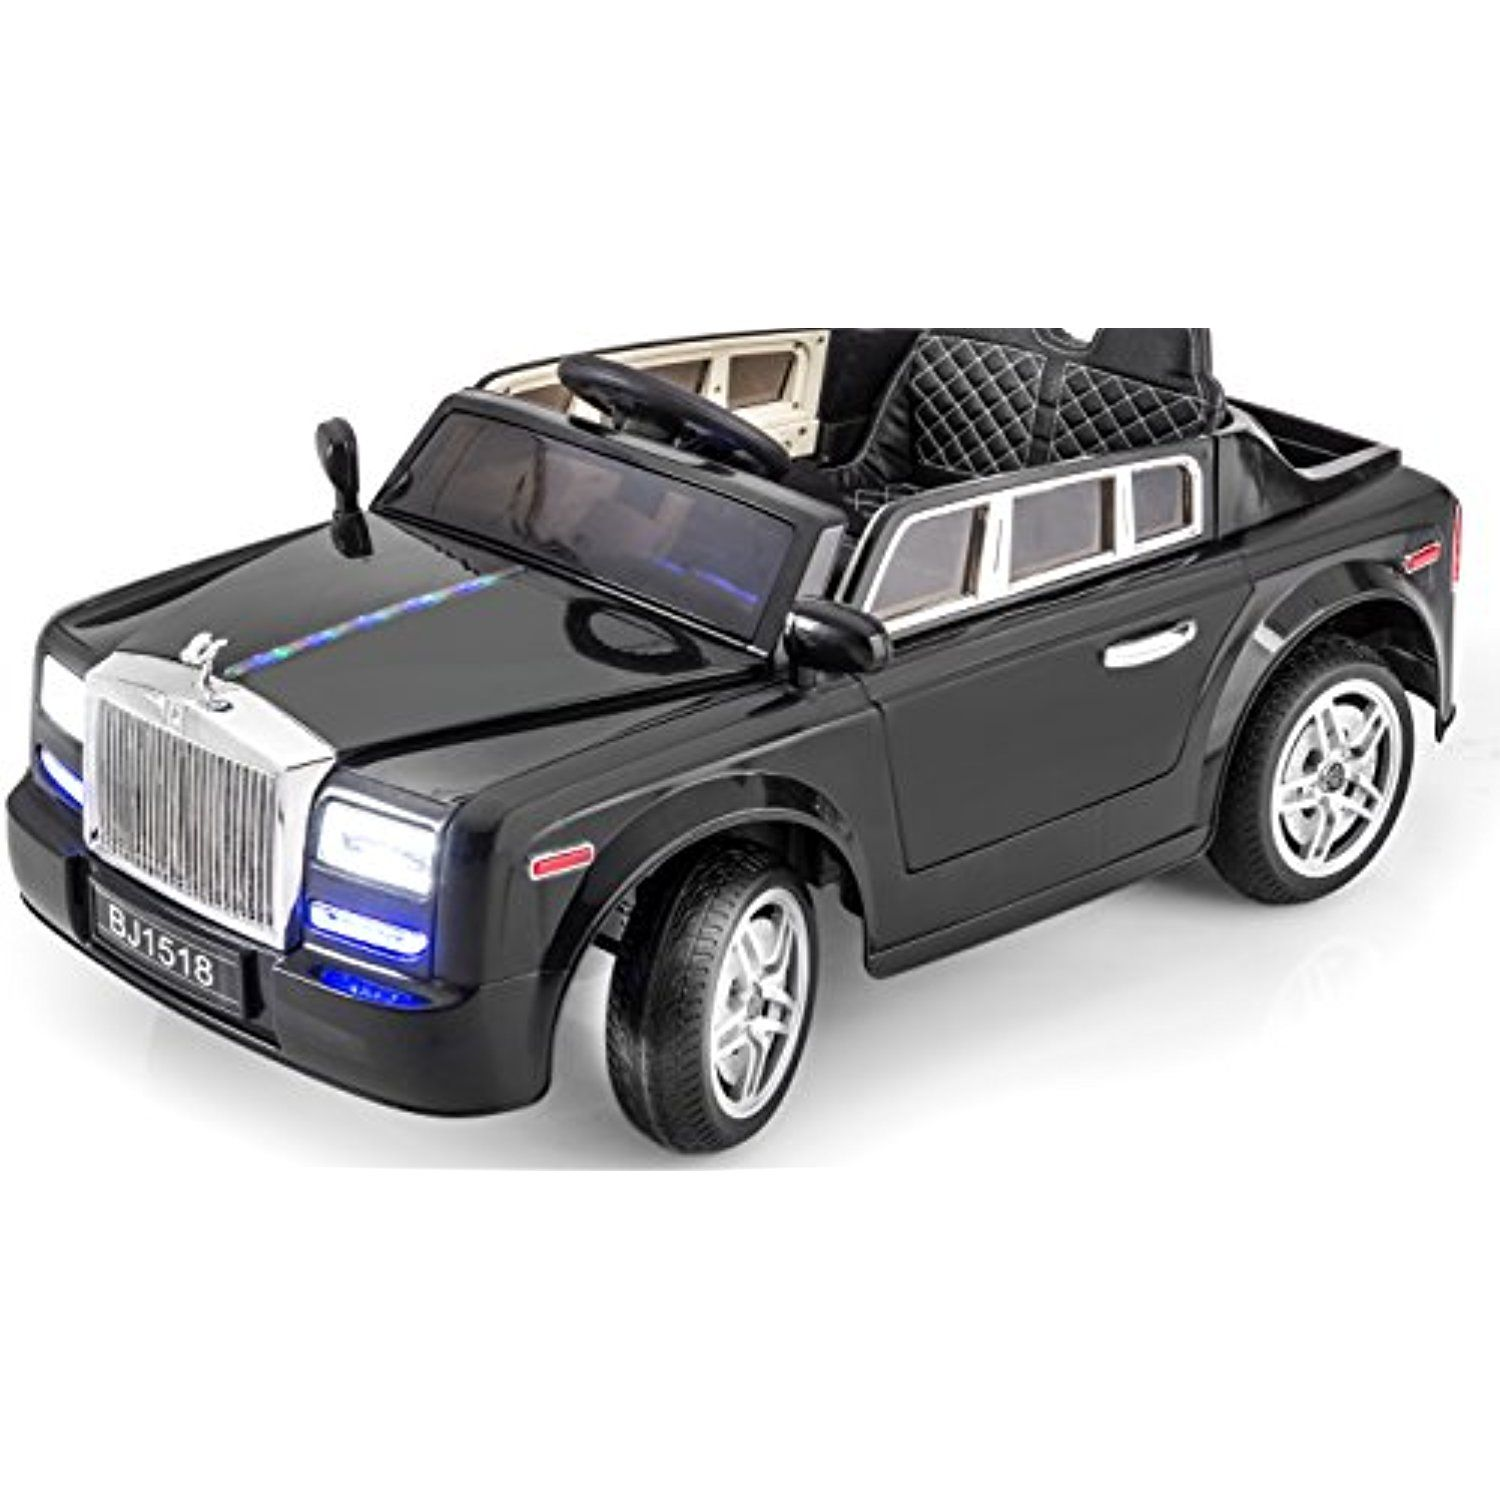 Luxury Super Car Rolls Royce Phantom Style 12v Remote Controled Ride On Electric Toy Car For Kids Music Lights Rolls Royce Phantom Rolls Royce Ride On Toys